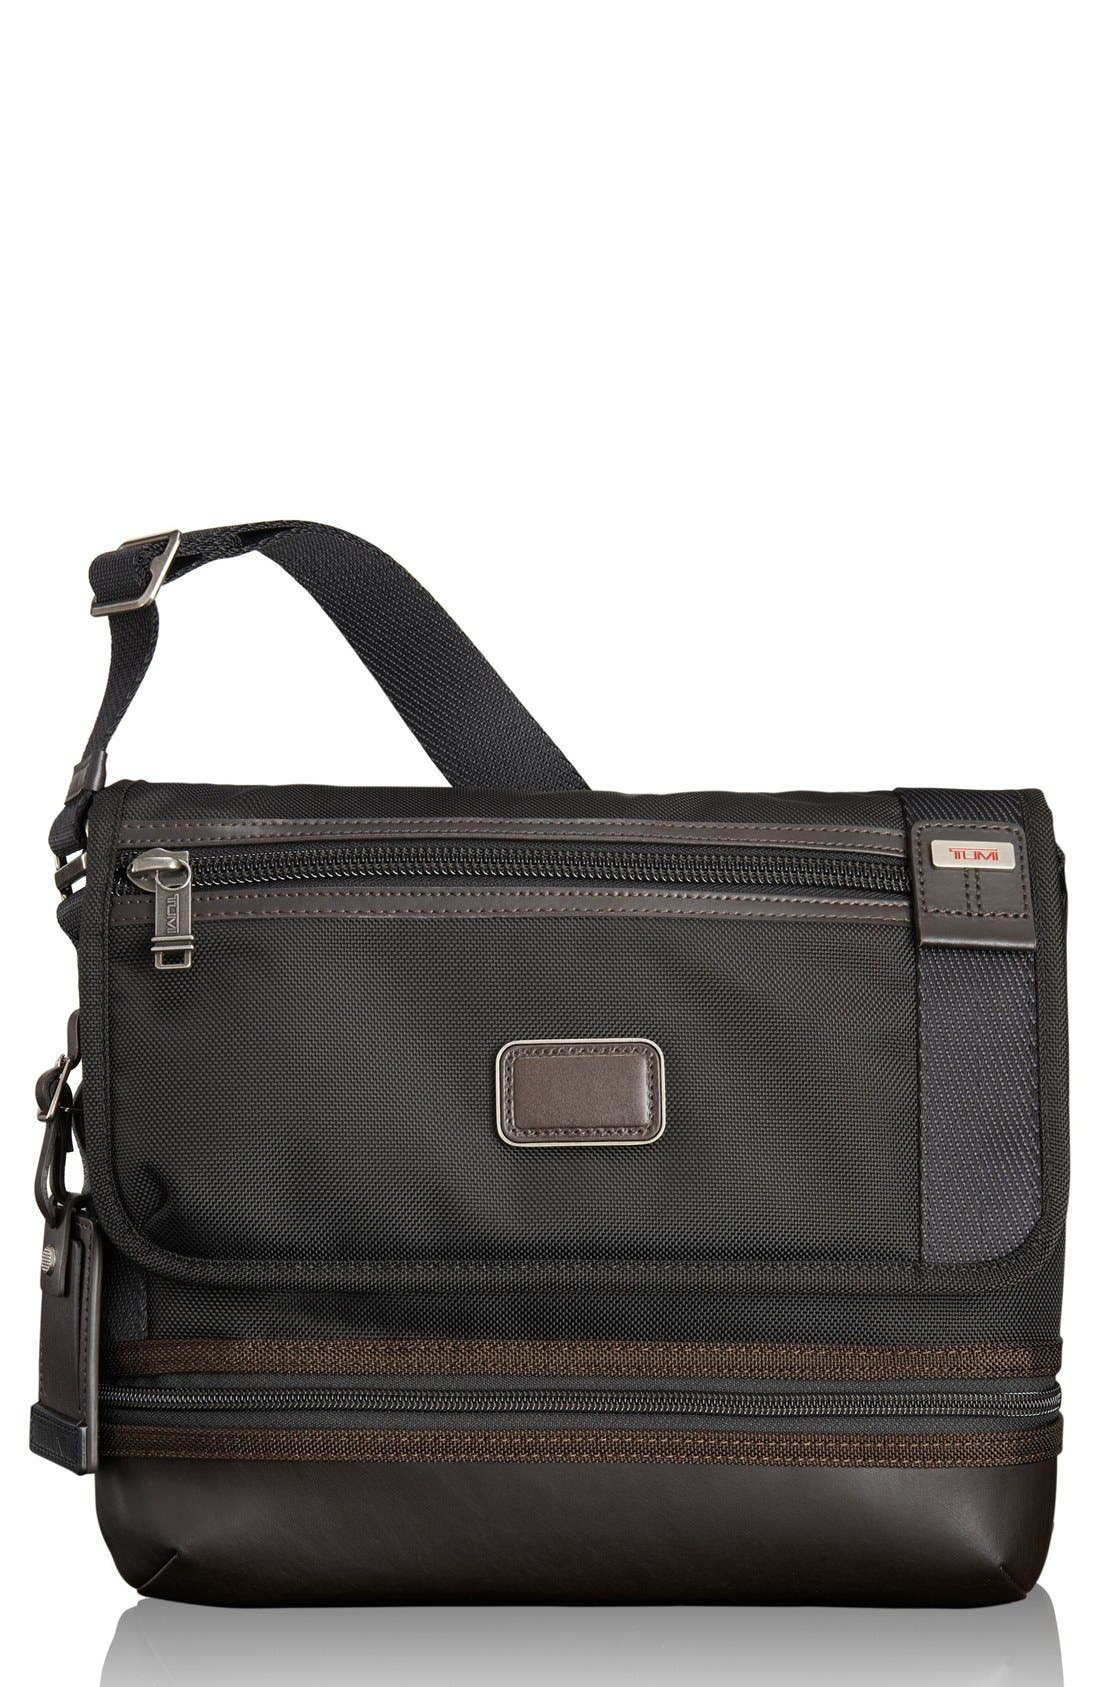 TUMI Alpha Bravo - Beale Crossbody Bag